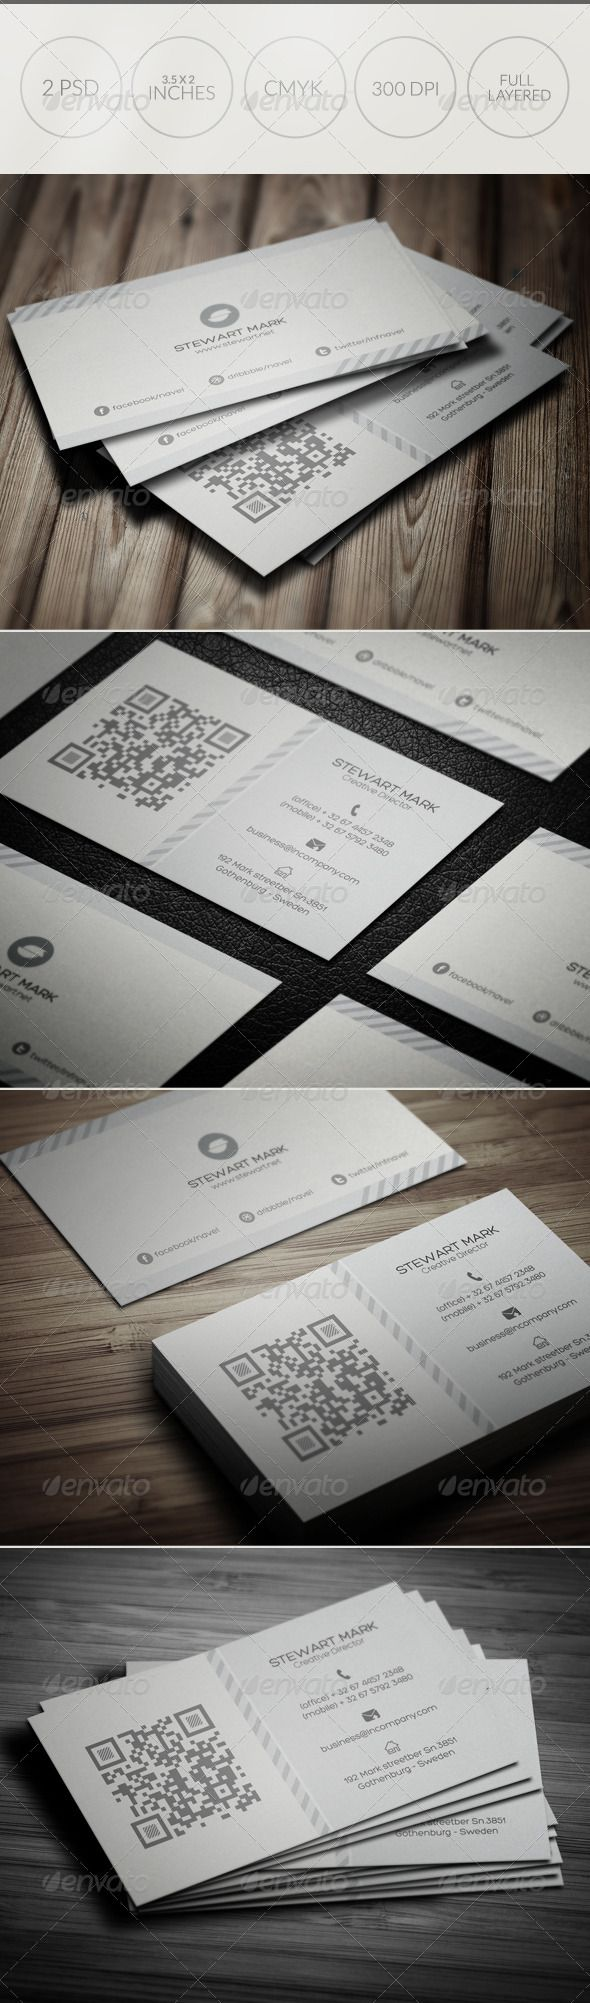 Creative Business Card Business Card Psd Free Business Cards Creative Business Card Template Design